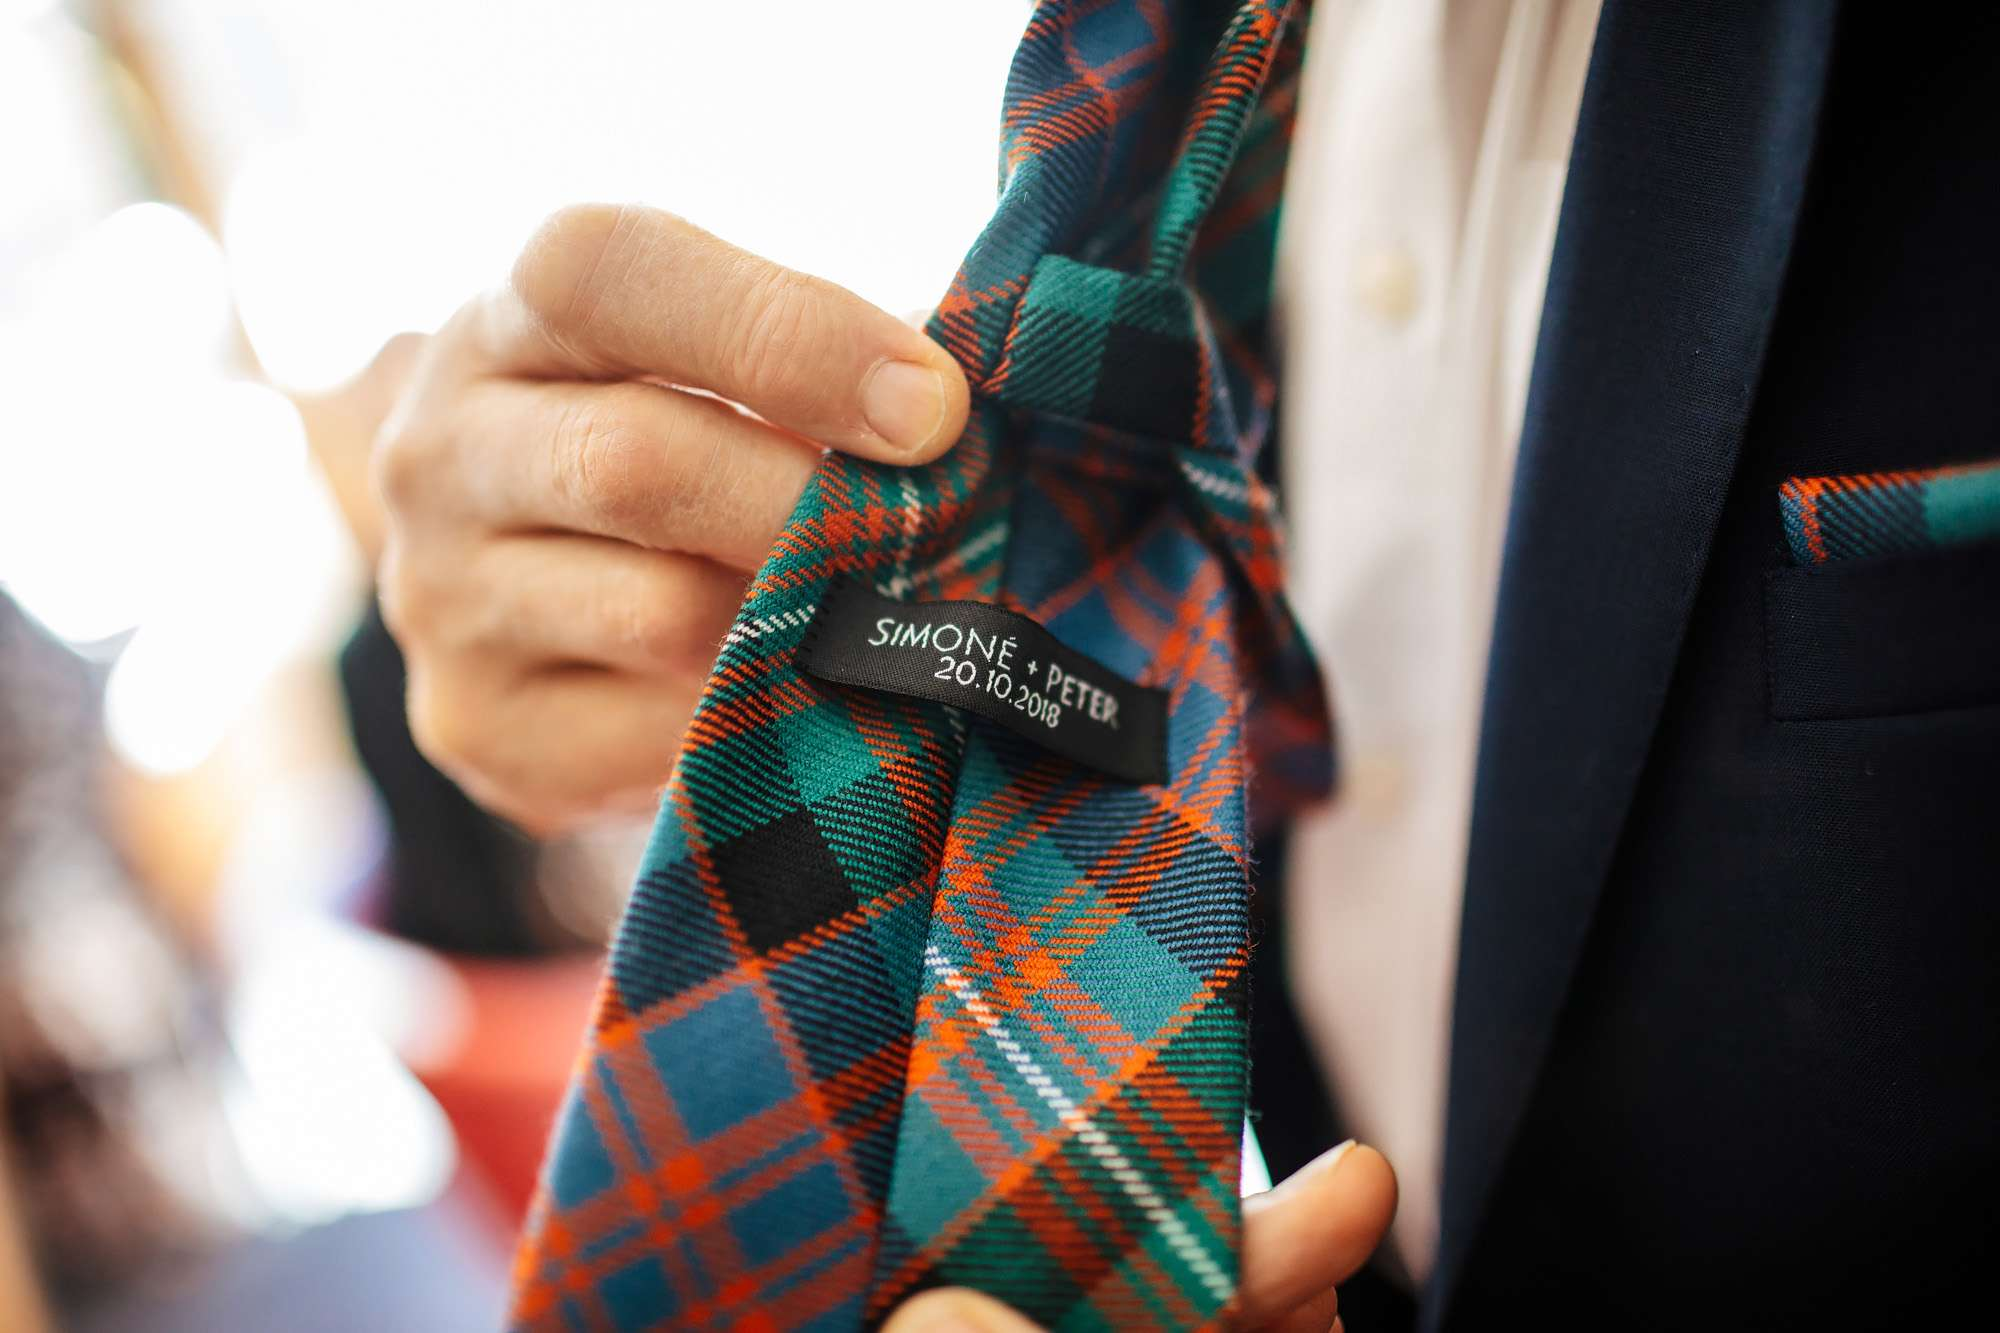 Groom has name and date embroidered on his tie